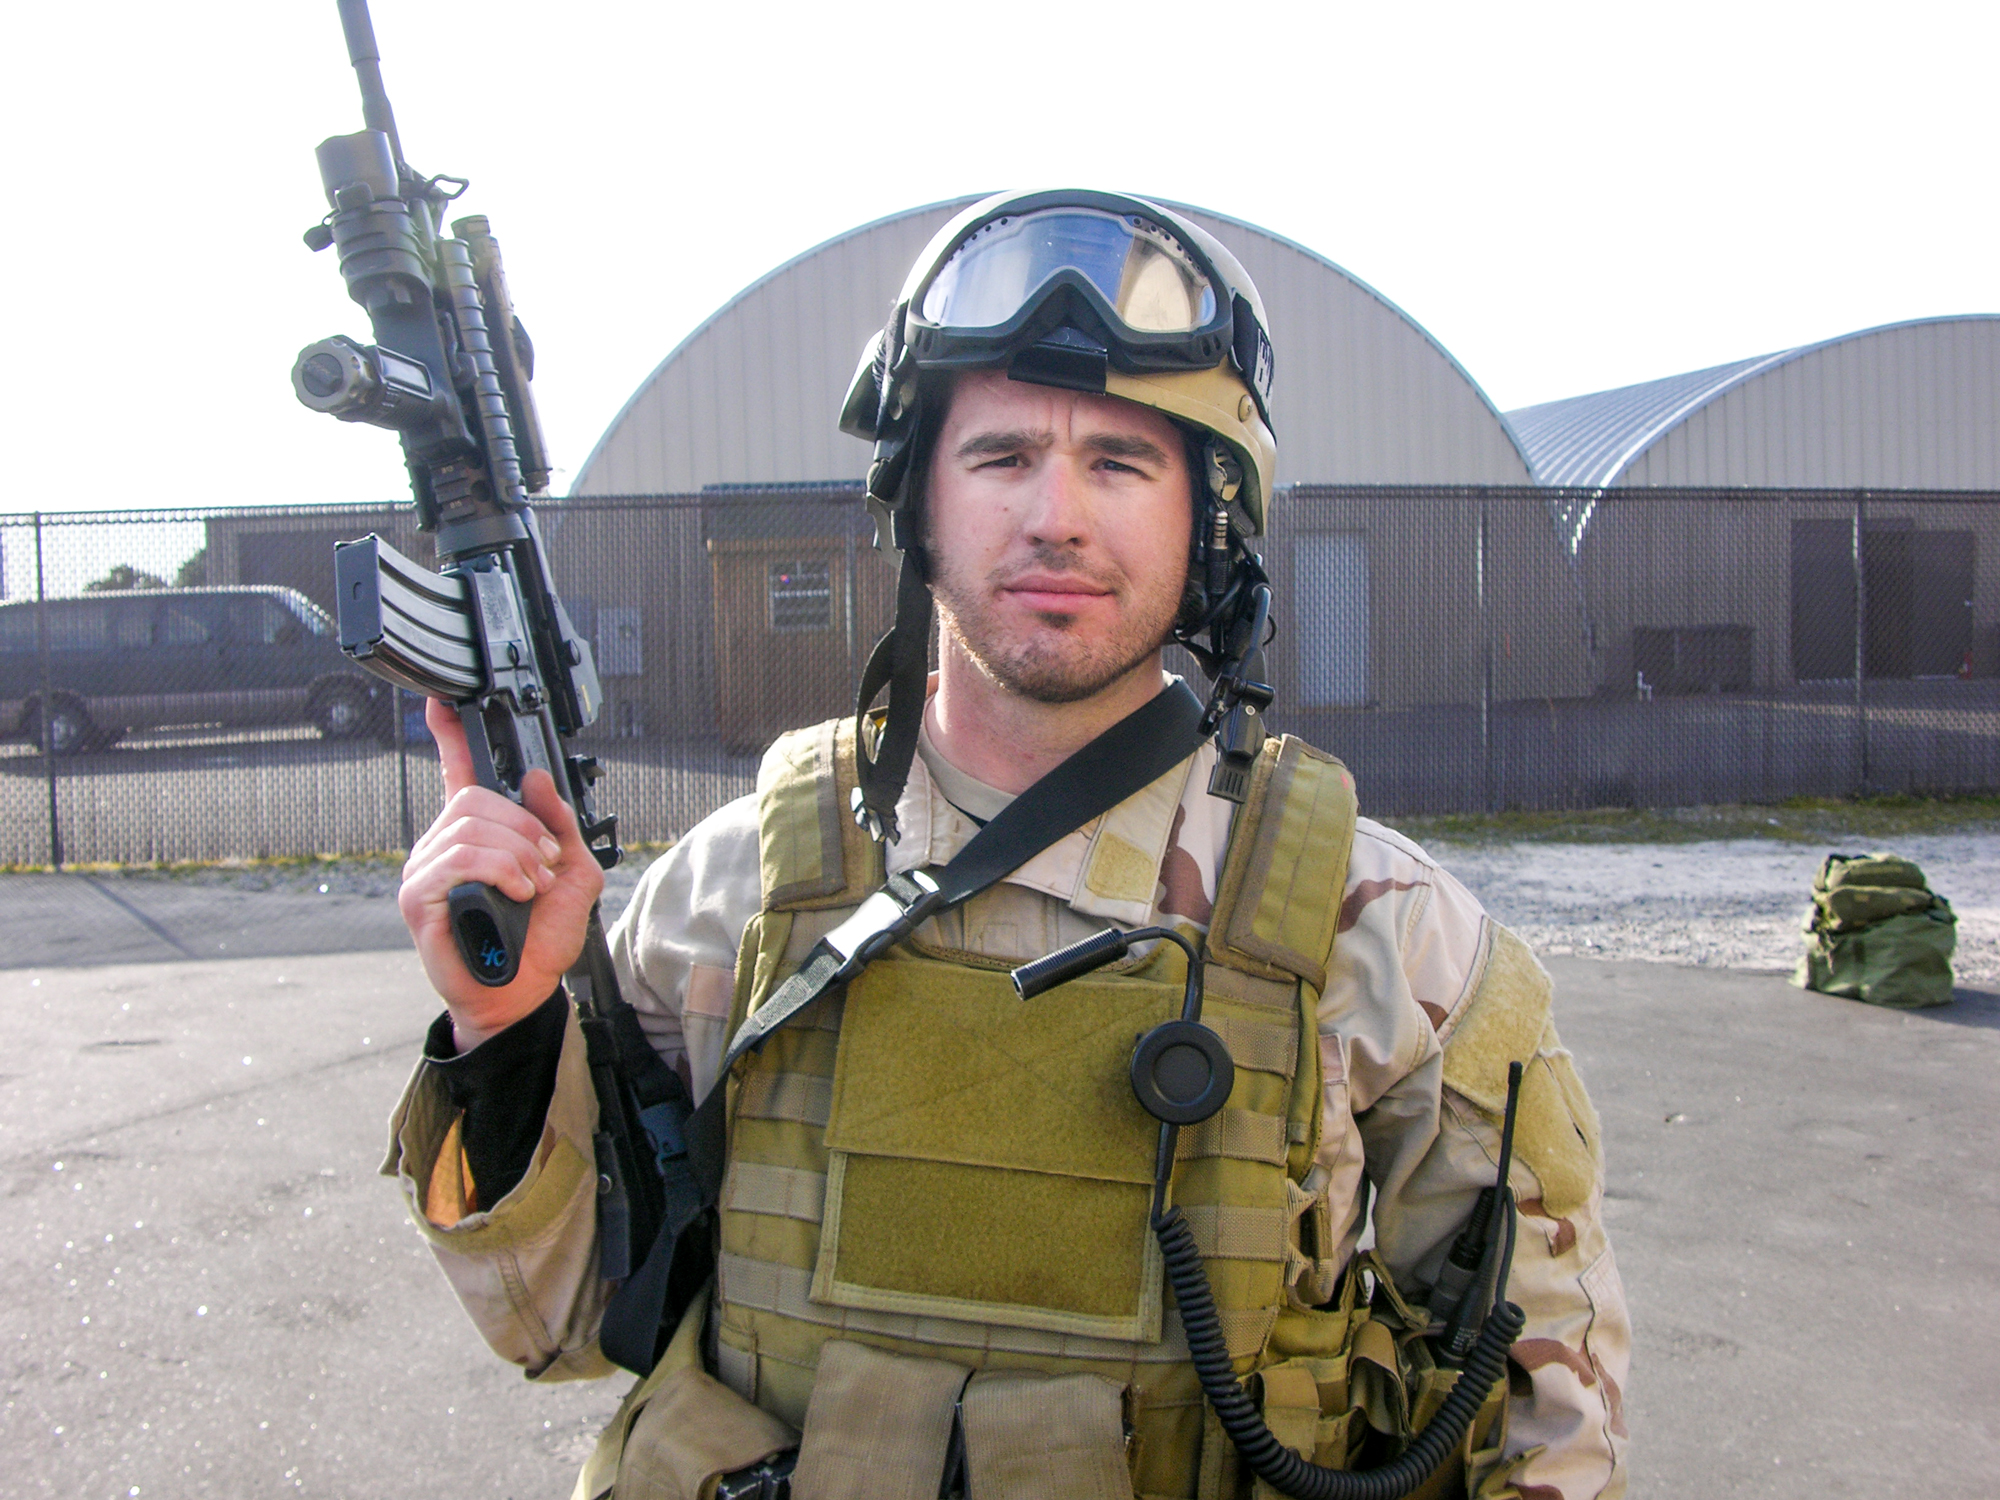 United States Army Capt. Benjamin David Tiffner, 31, of West Virginia, died Nov. 7, 2007, when his vehicle was struck by an improvised-explosive device in Baghdad, Iraq, while he was supporting Operation Iraqi Freedom.